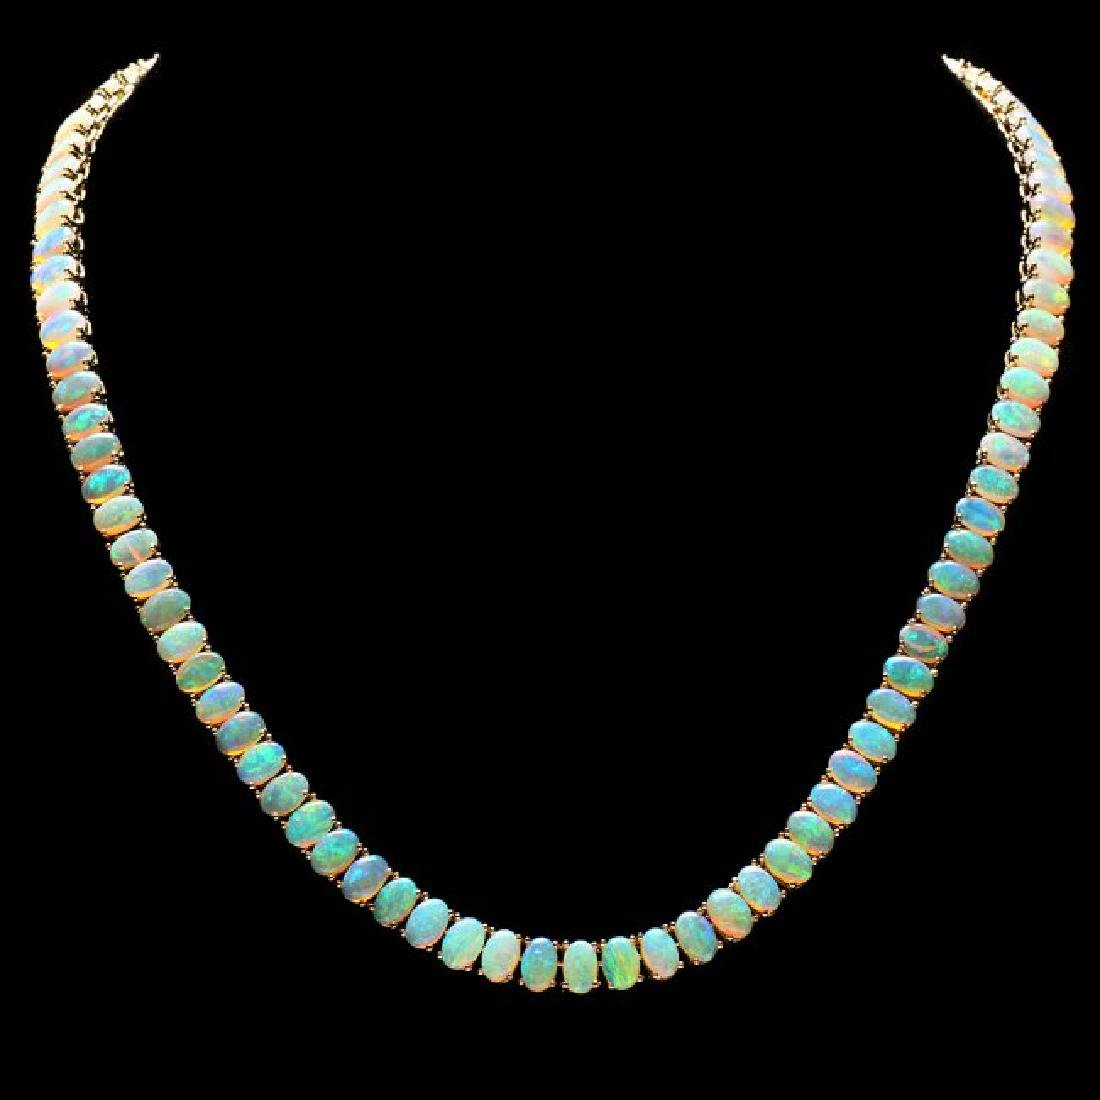 14k Yellow Gold 30.00ct Opal Necklace